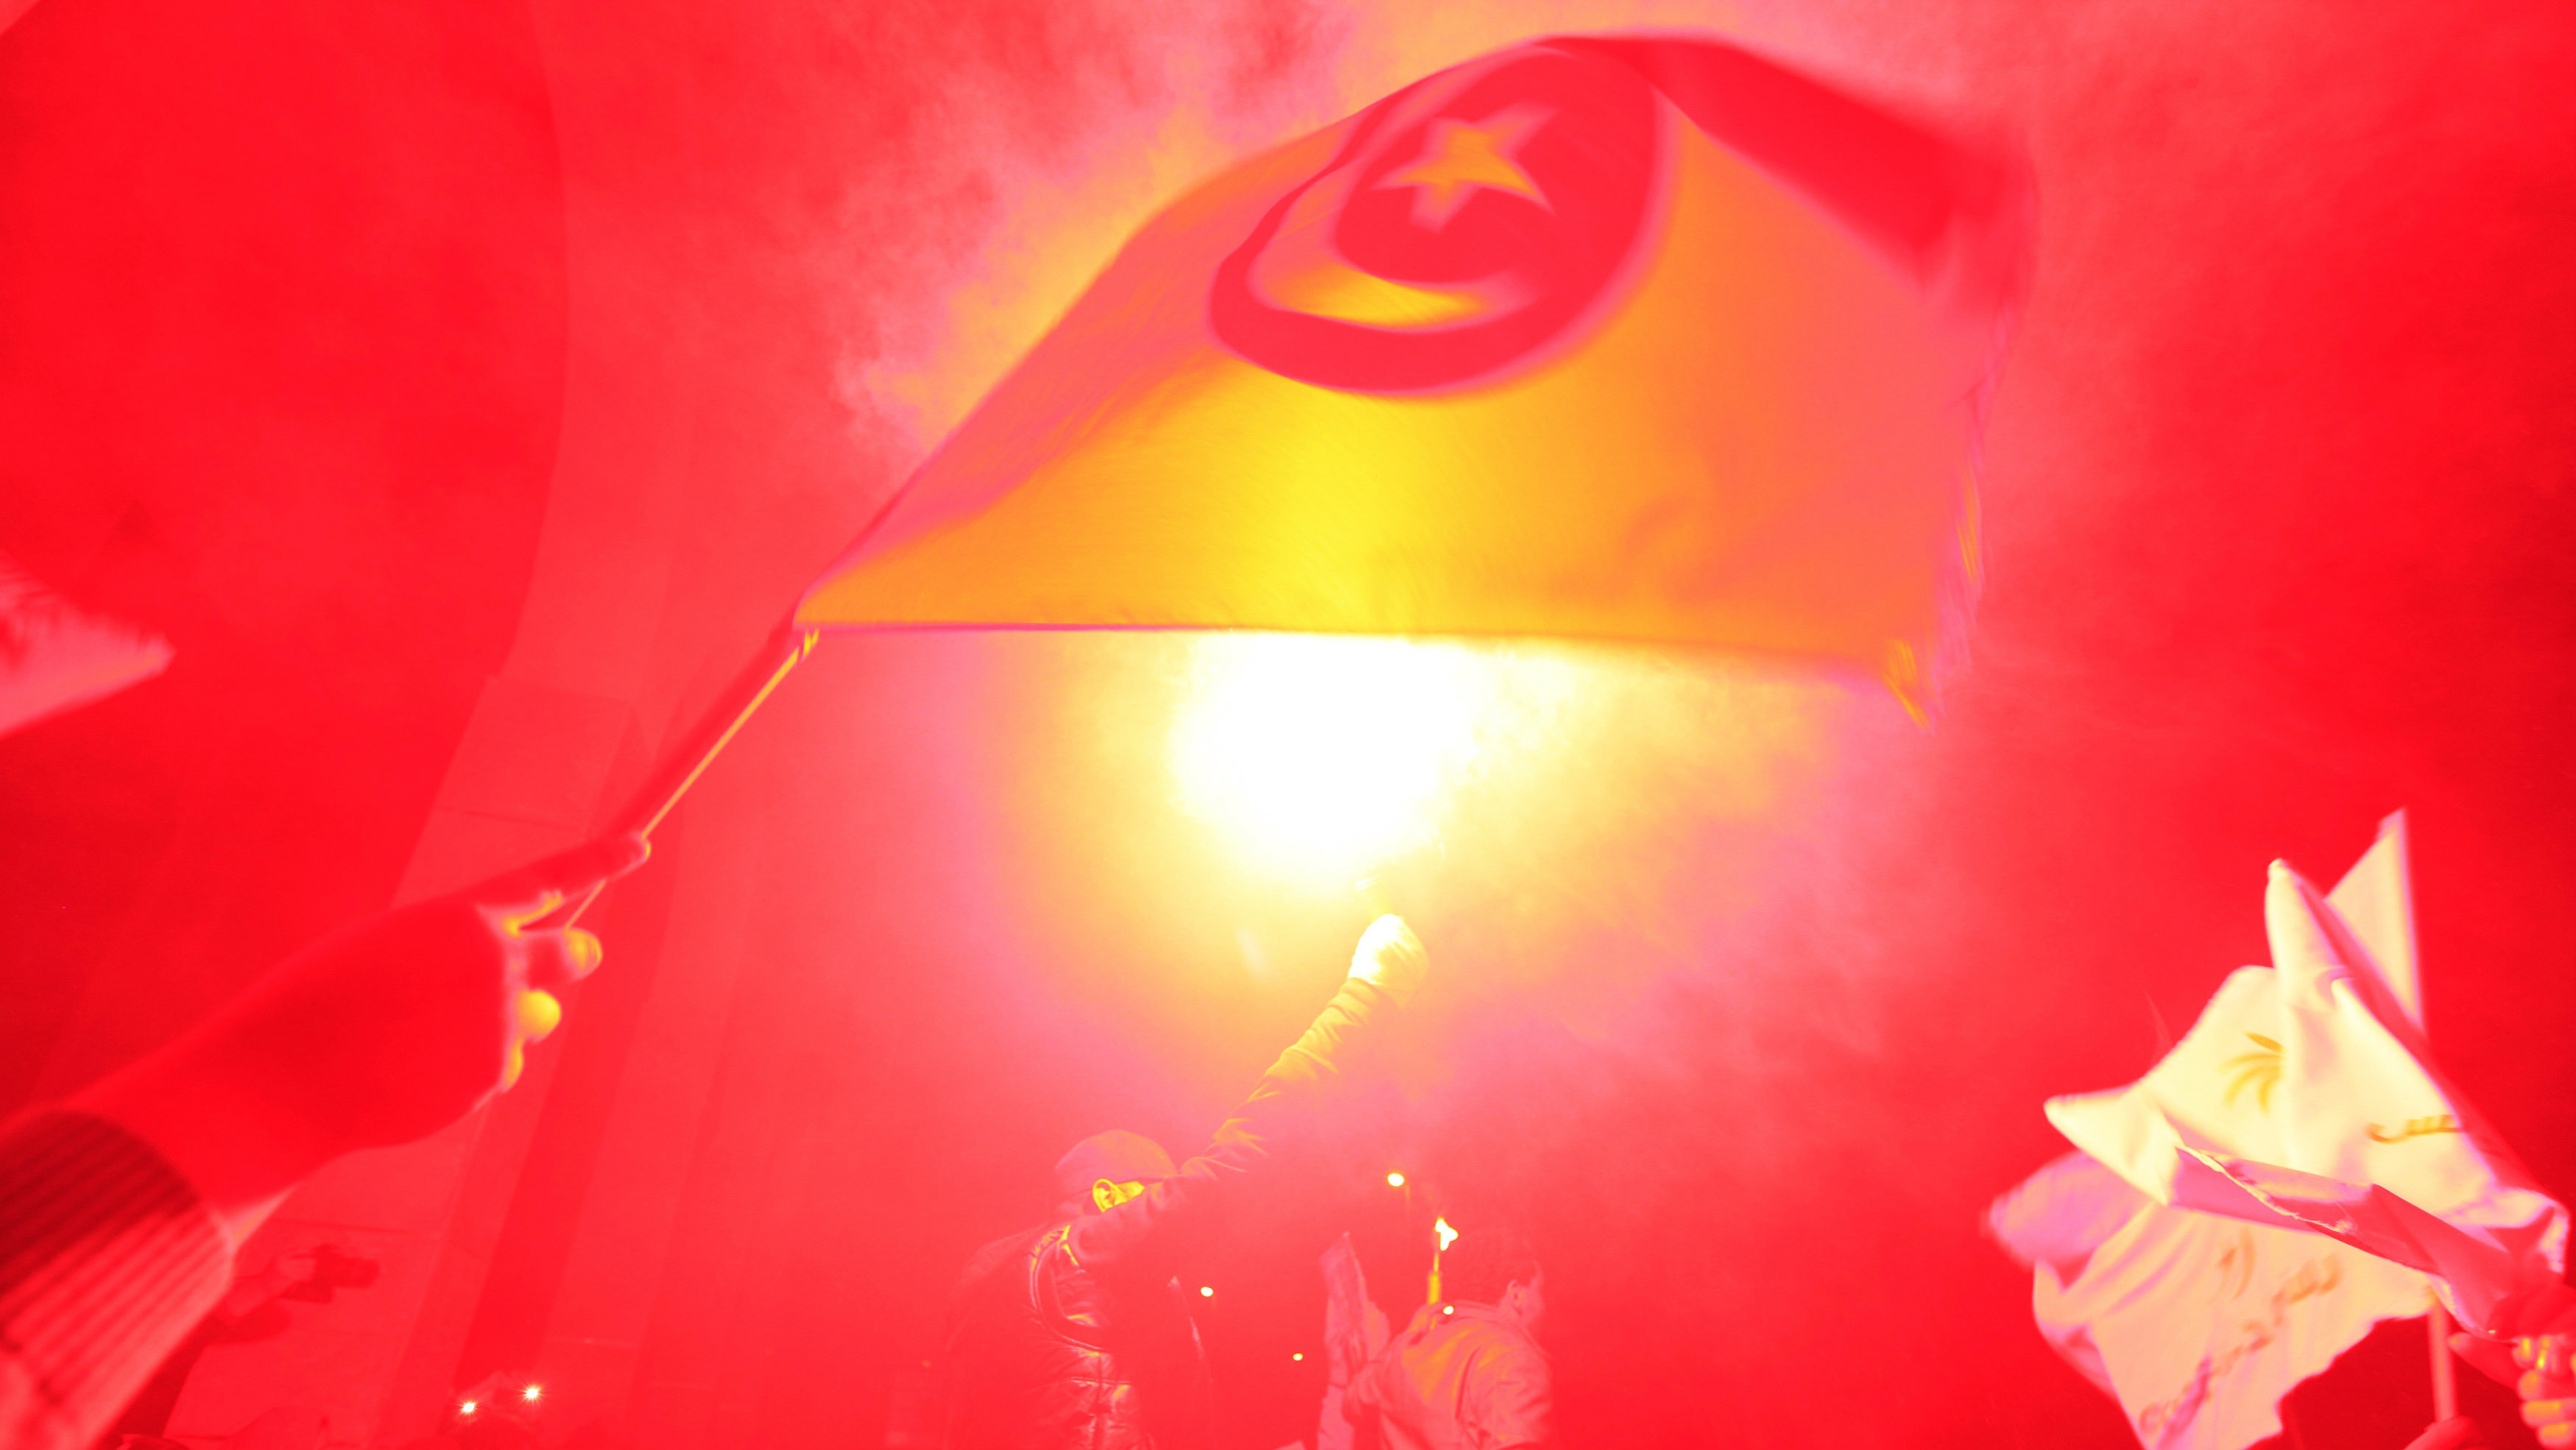 Supporters of the Nidaa Tounes (Call for Tunisia) secular party movement wave the national flag and shout slogans amidst lighted flares outside Nidaa Tounes in Tunis December 21, 2014.